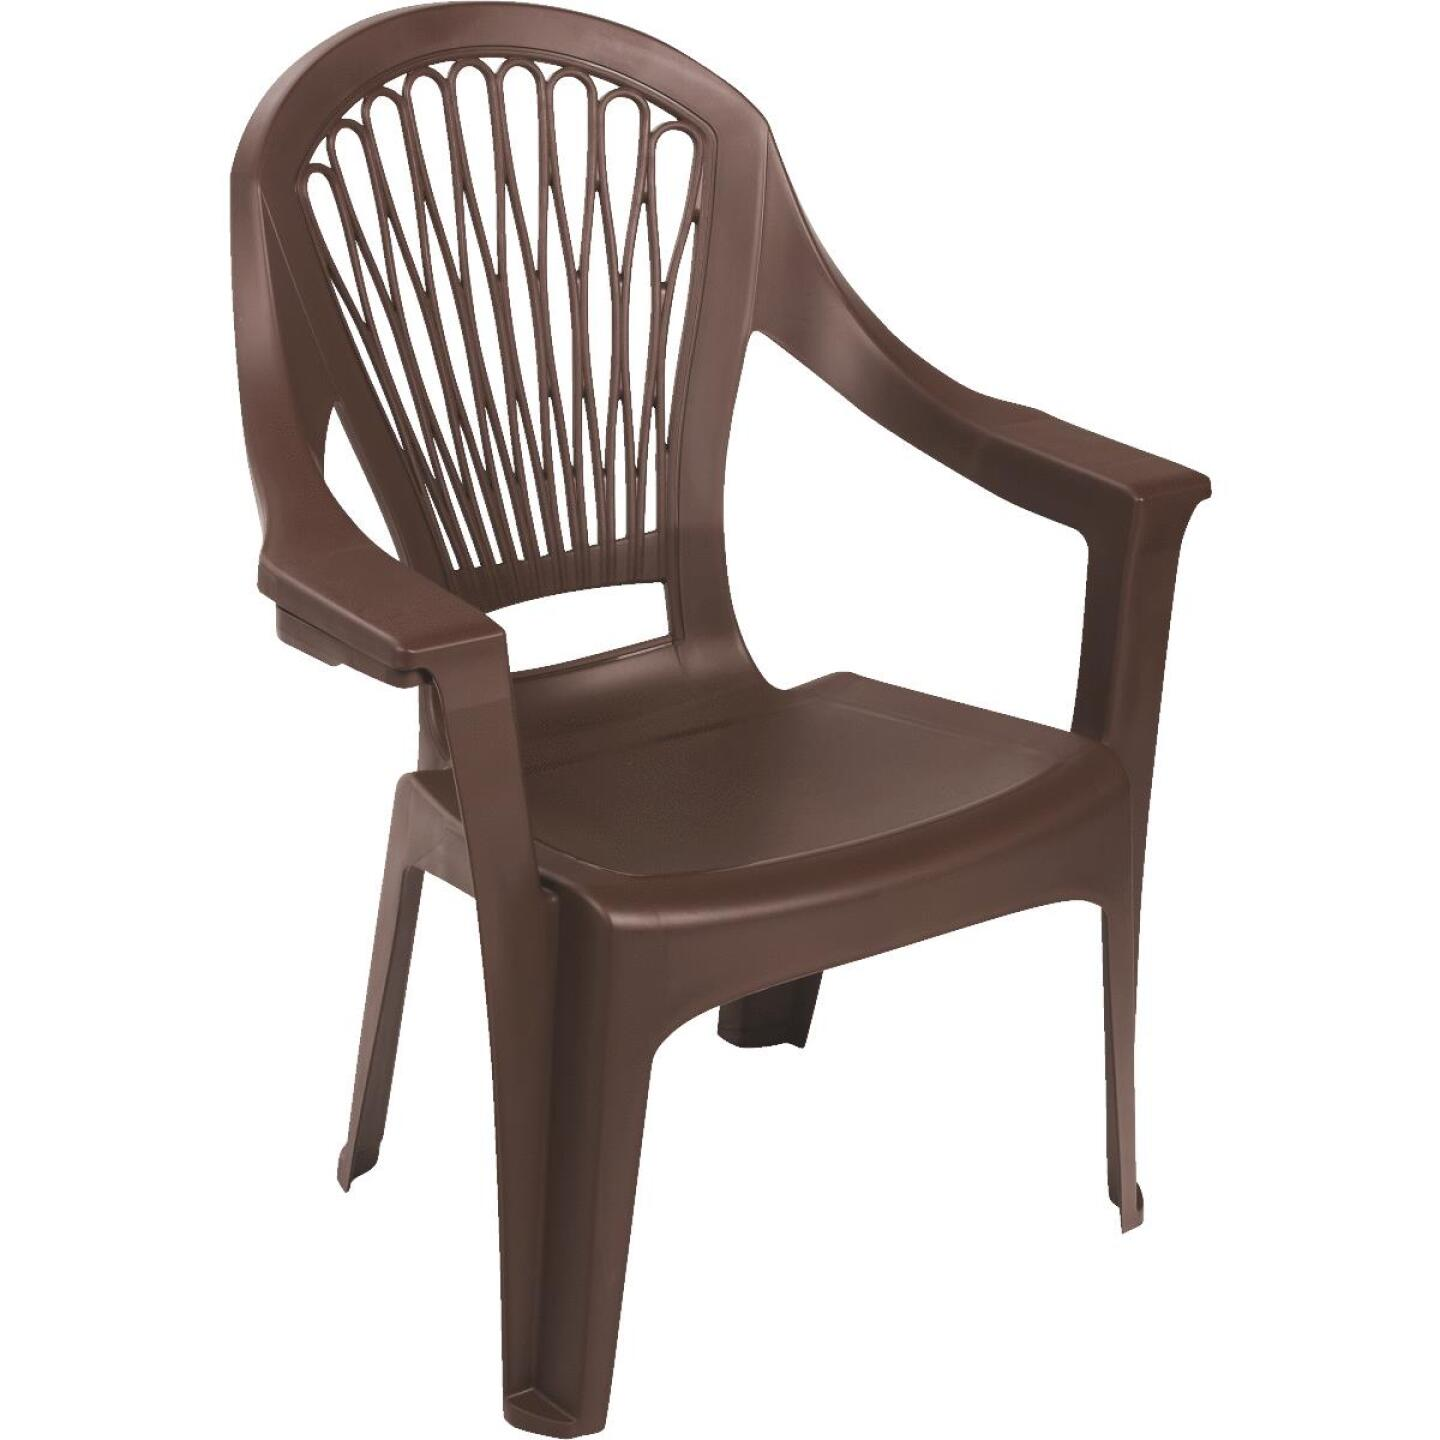 Adams Big Easy Earth Brown Resin High Back Stackable Chair Image 1